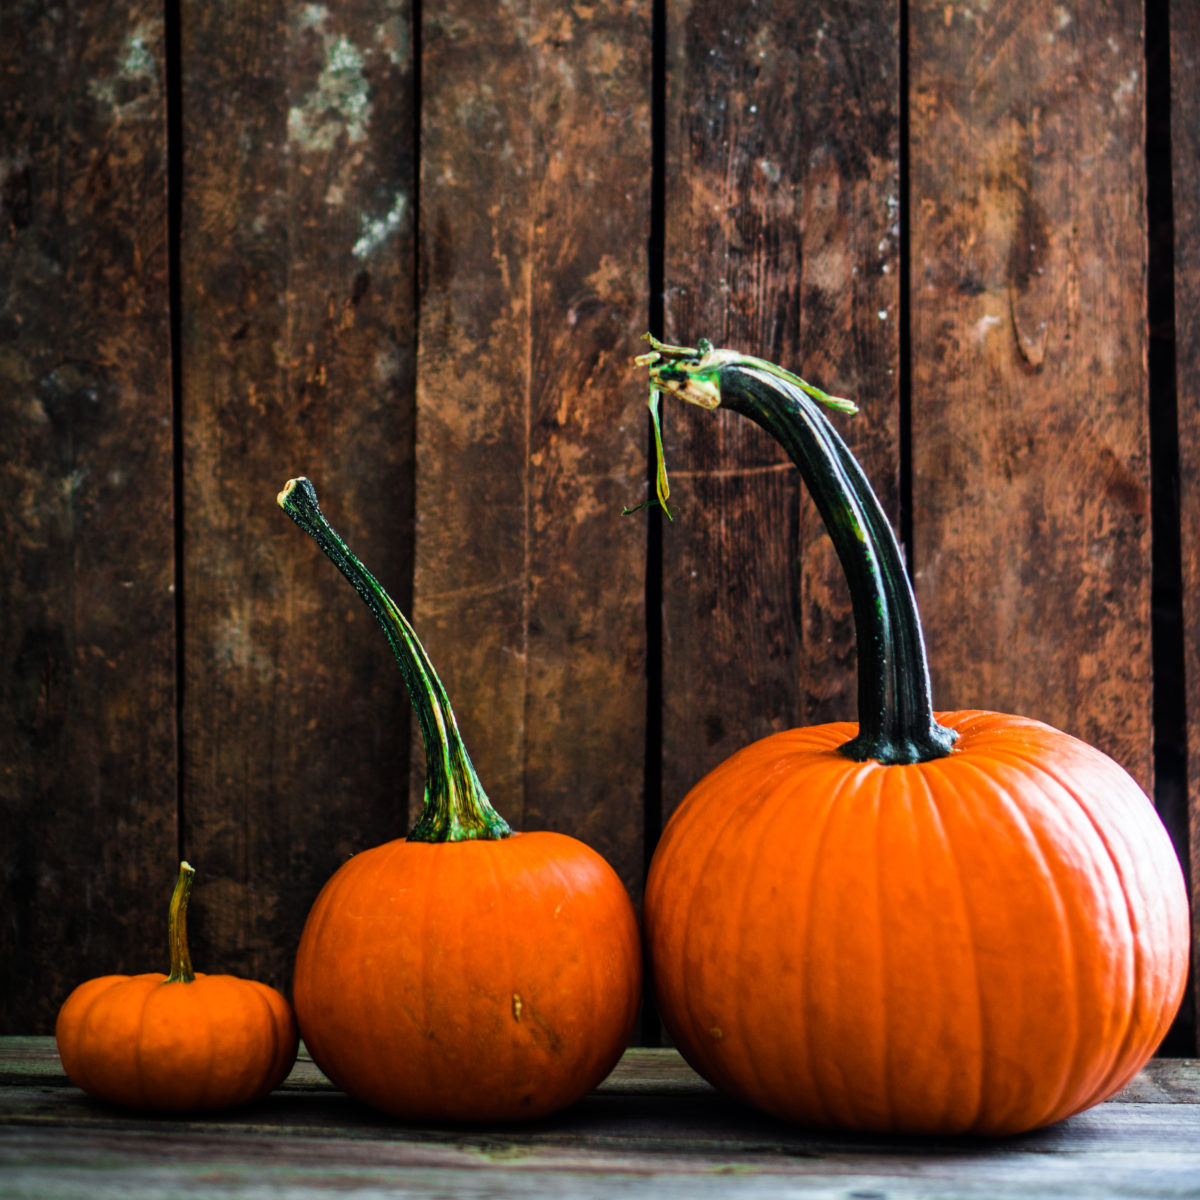 Colorful pumpkins on wooden background